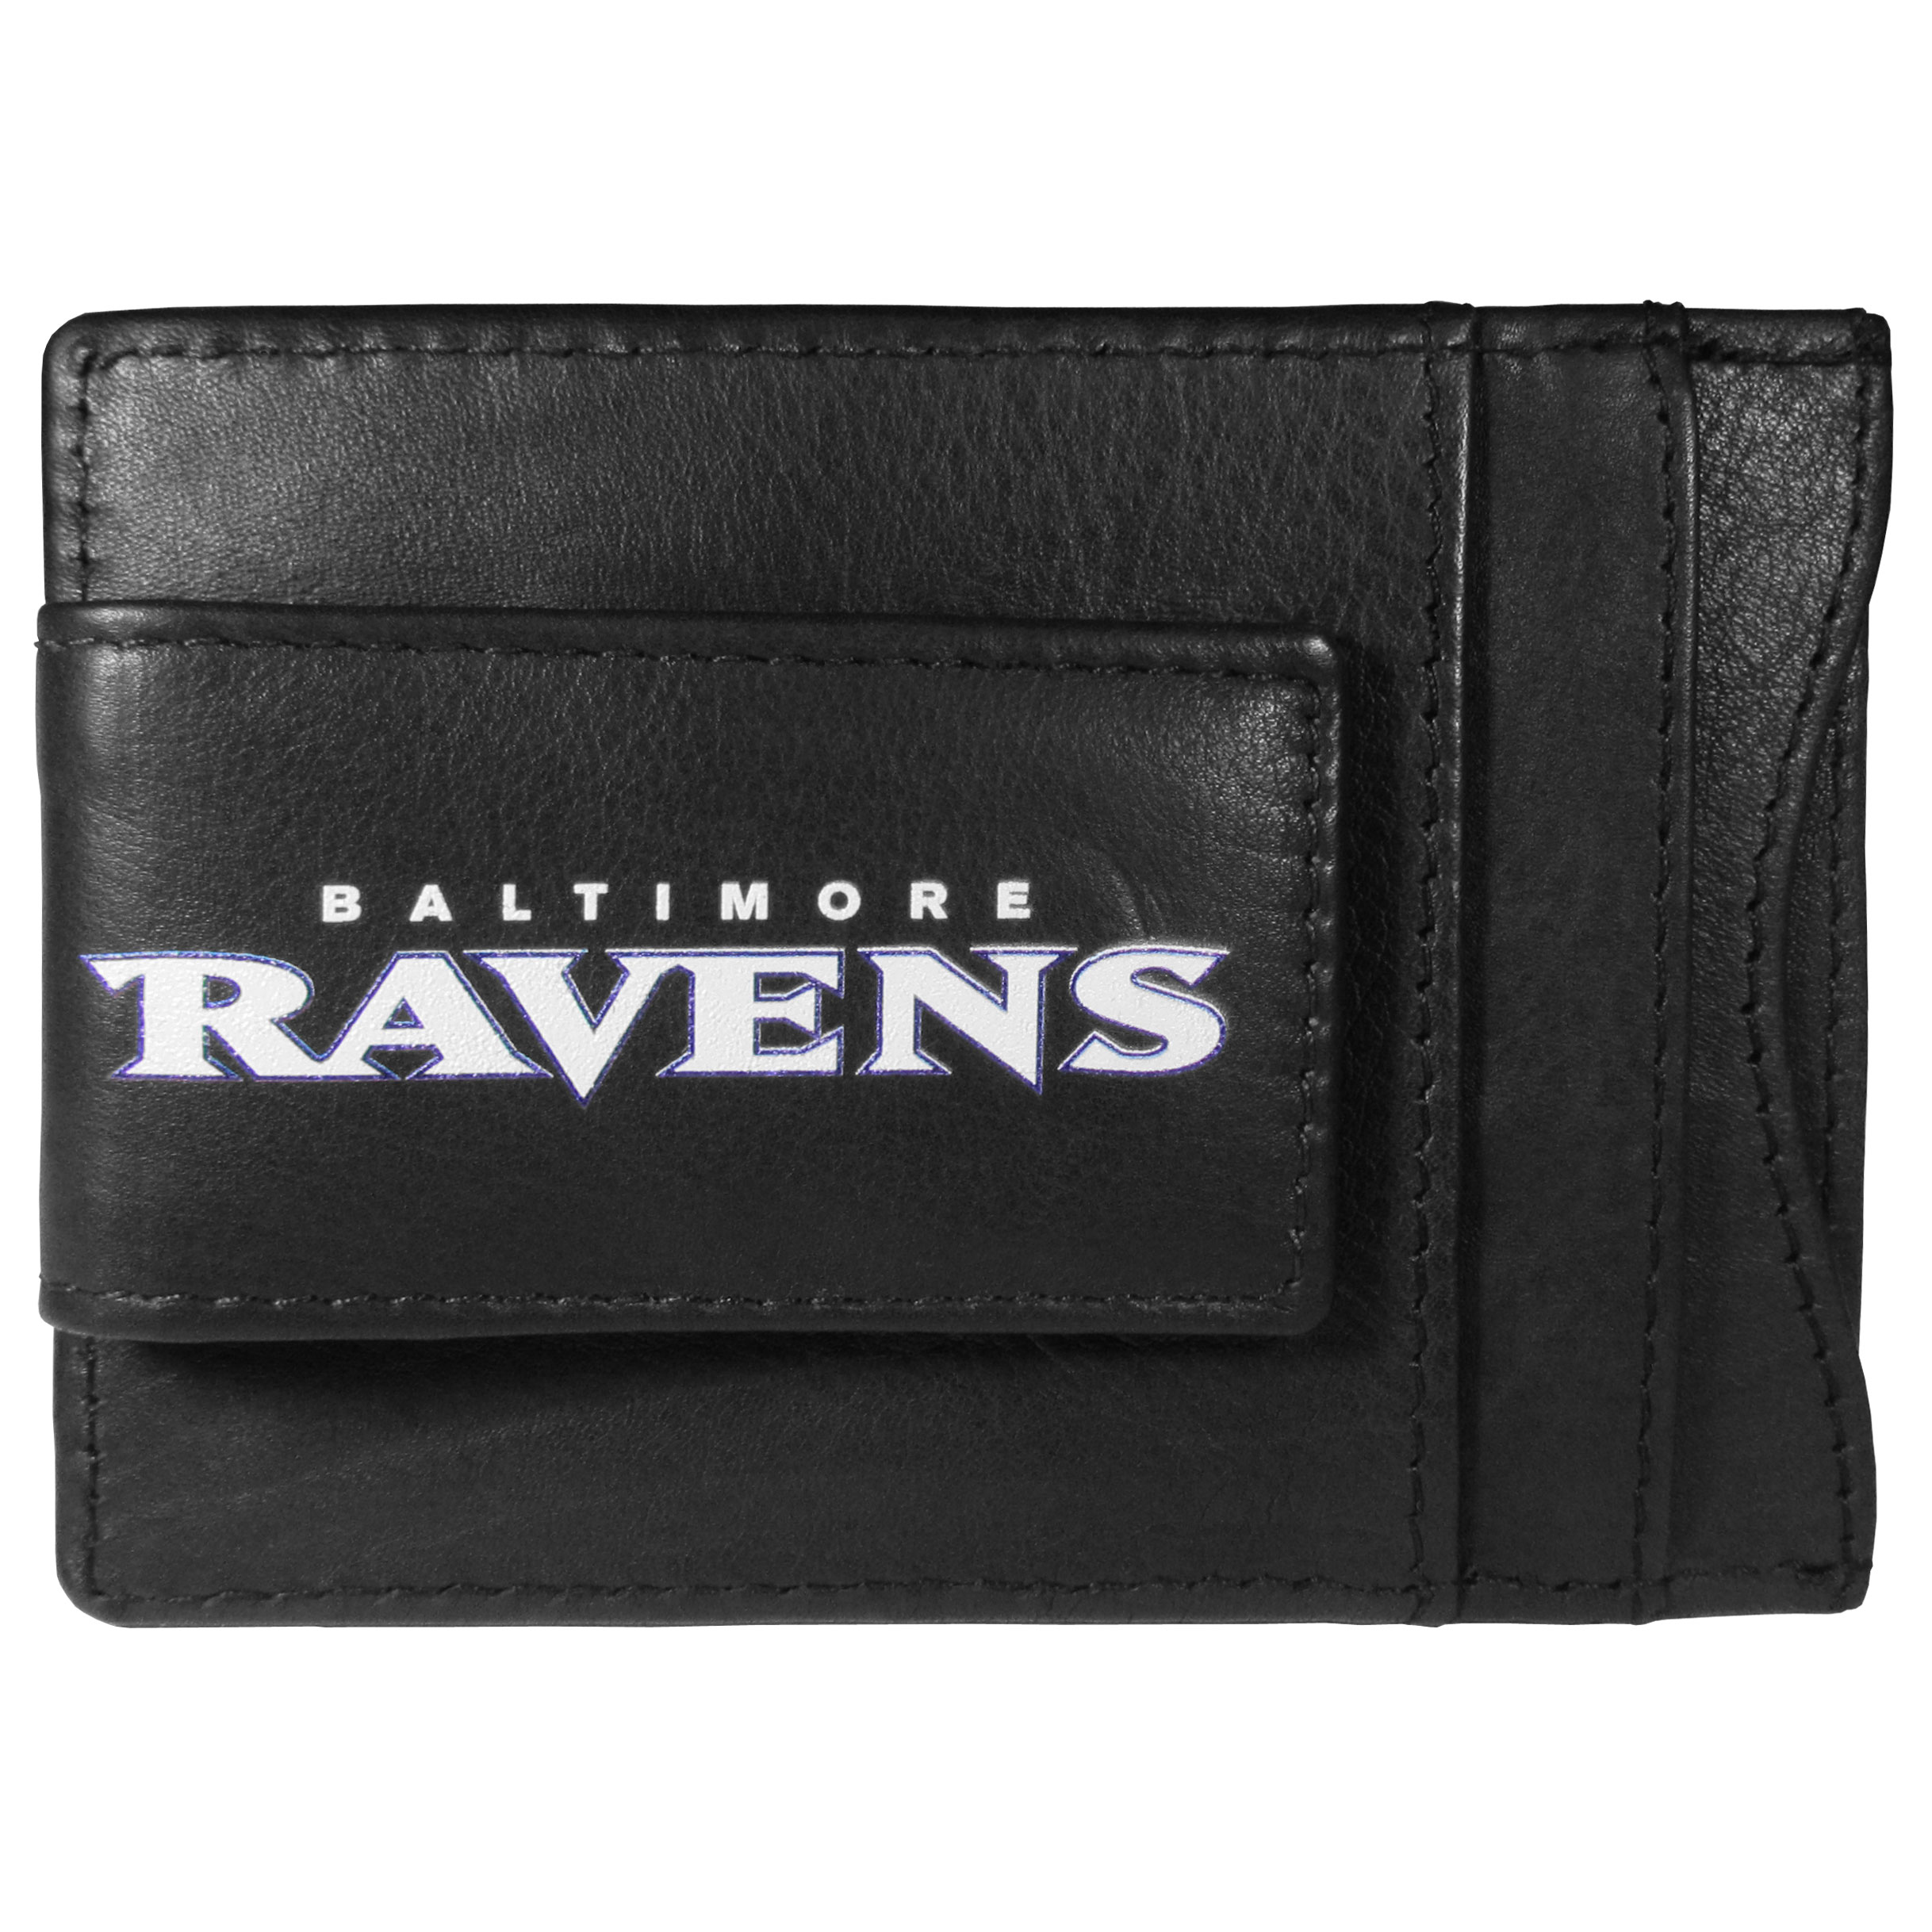 Baltimore Ravens Logo Leather Cash and Cardholder - This super slim leather wallet lets you have all the benefits of a money clip while keeping the organization of a wallet. On one side of this front pocket wallet there is a strong, magnetic money clip to keep your cash easily accessible and the?Baltimore Ravens team logo on the front. The versatile men's accessory is a perfect addition to your fan apparel.